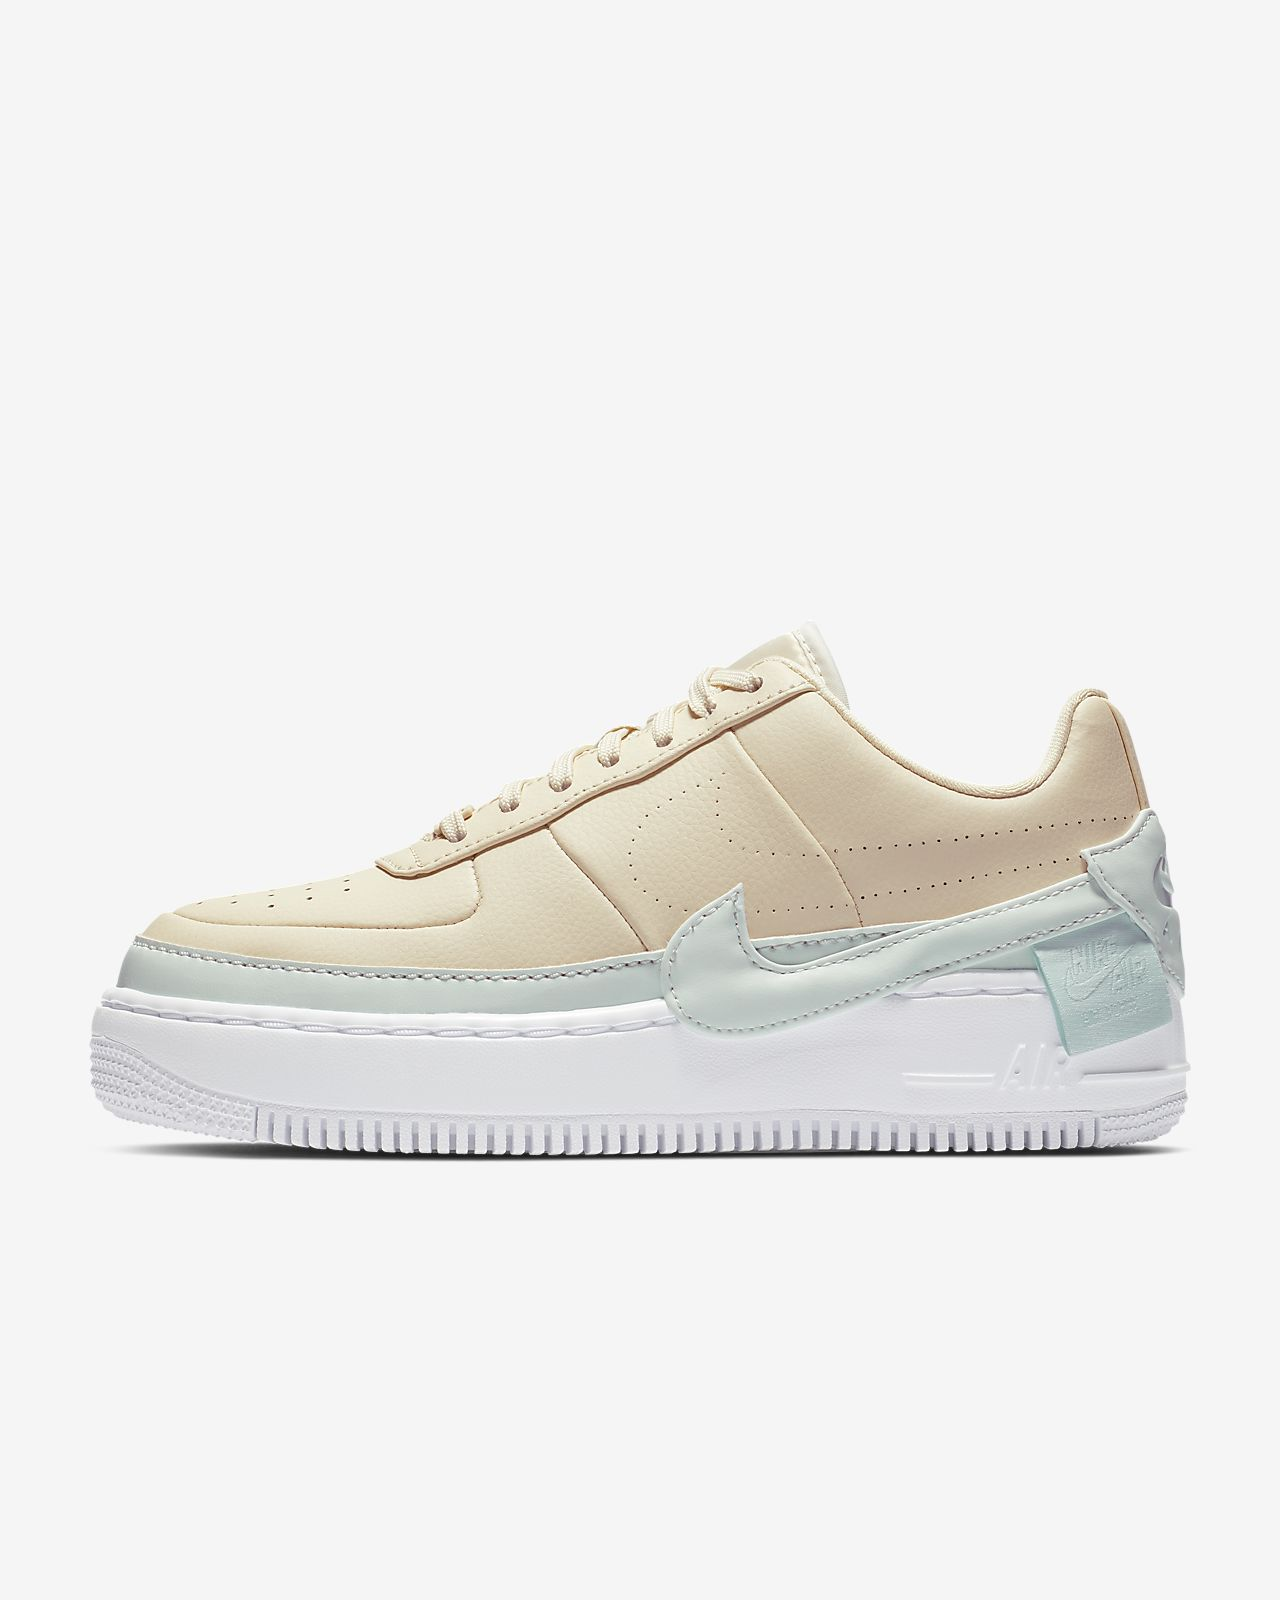 Femme Be Xx Jester Pour Chaussure 1 Nike Force Air 8xxpzq0